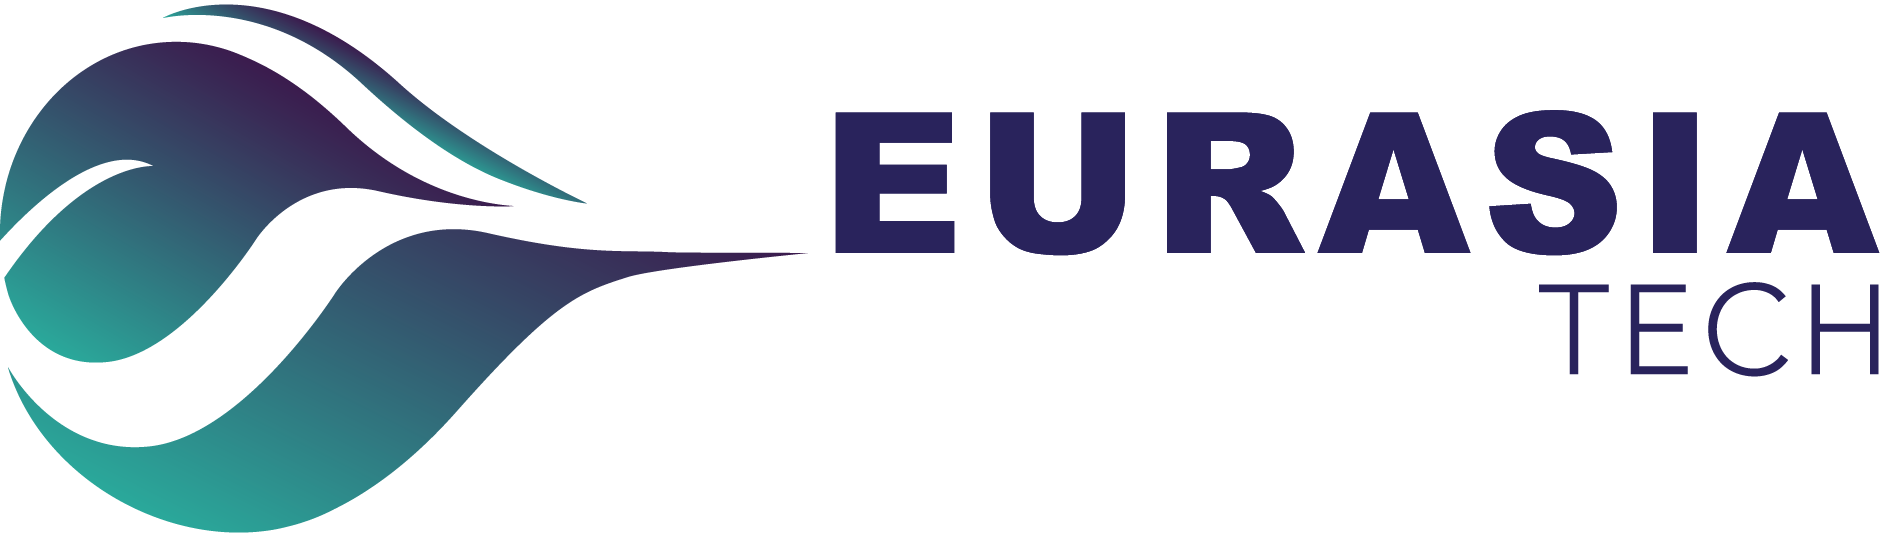 eurasia tech your reliable partnership solution in energy industry www euroasia tec com